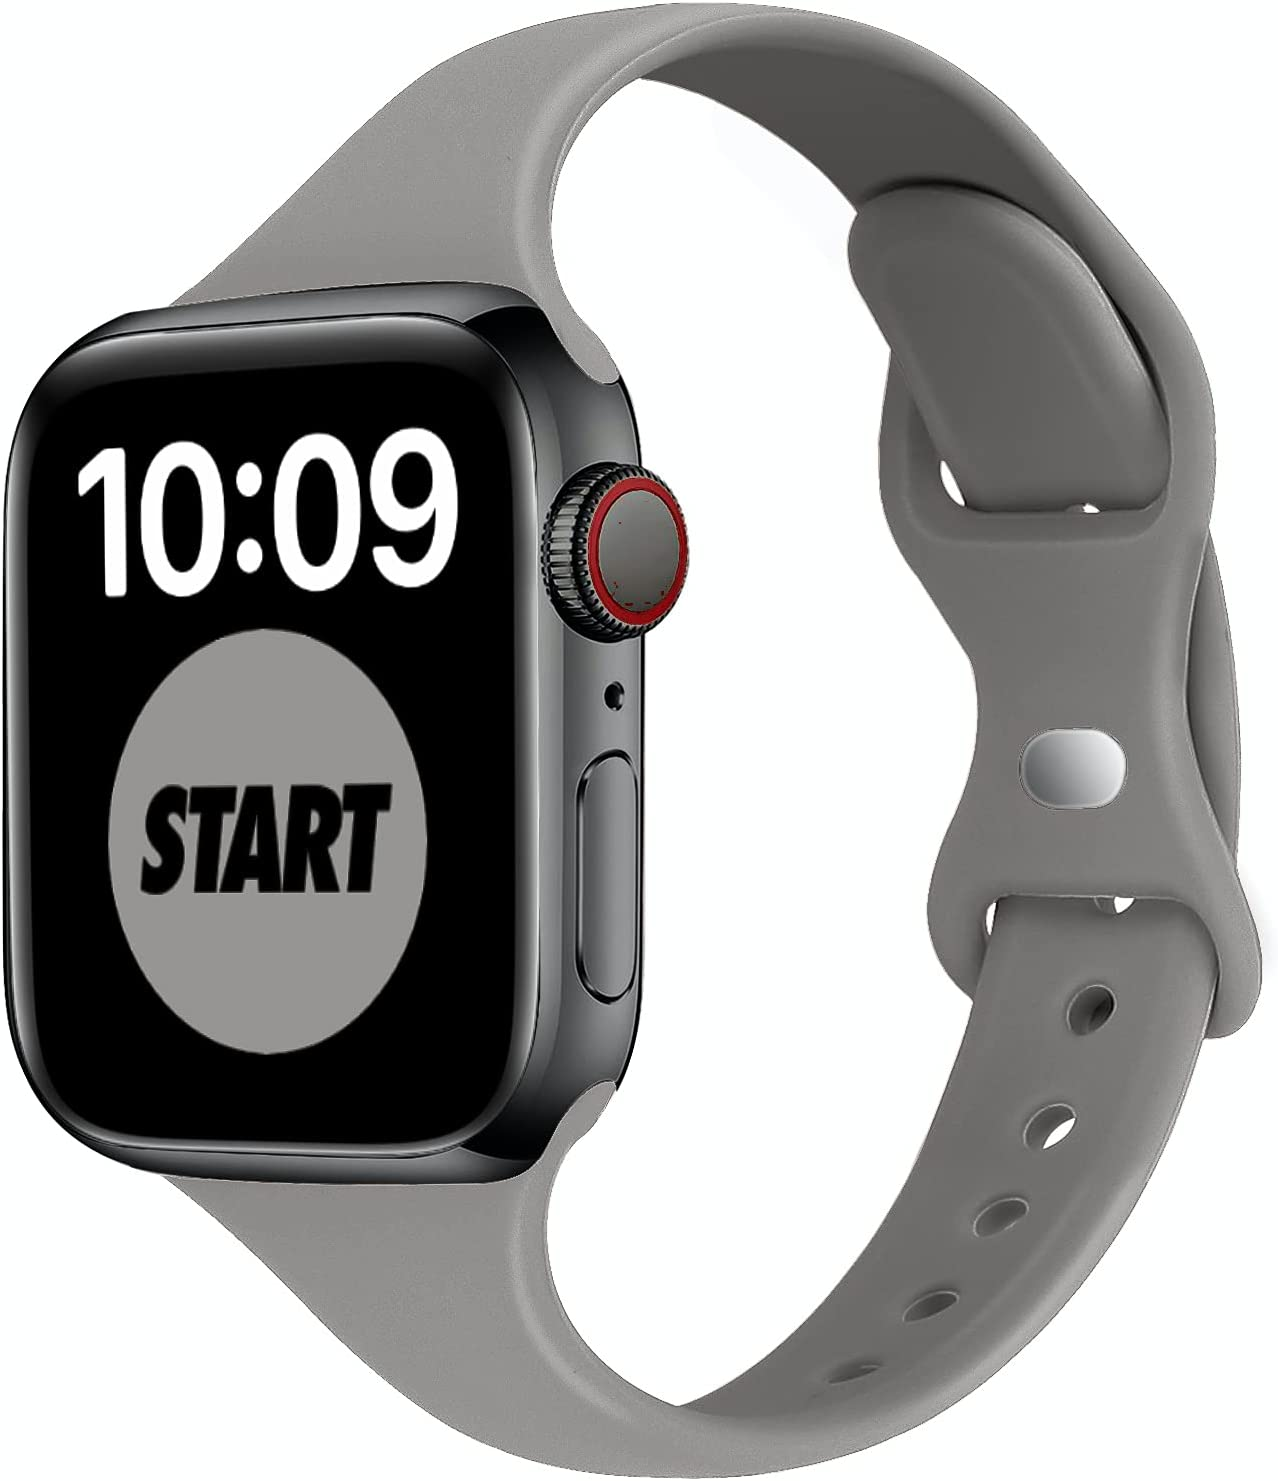 STG Sport Band Compatible with Apple Watch 38mm 40mm 42mm 44mm, Soft Silicone Slim Thin Narrow Replacement Strap Compatible for iWatch SE Series 6/5/4/3/2/1 (Concrete, 38/40mm)